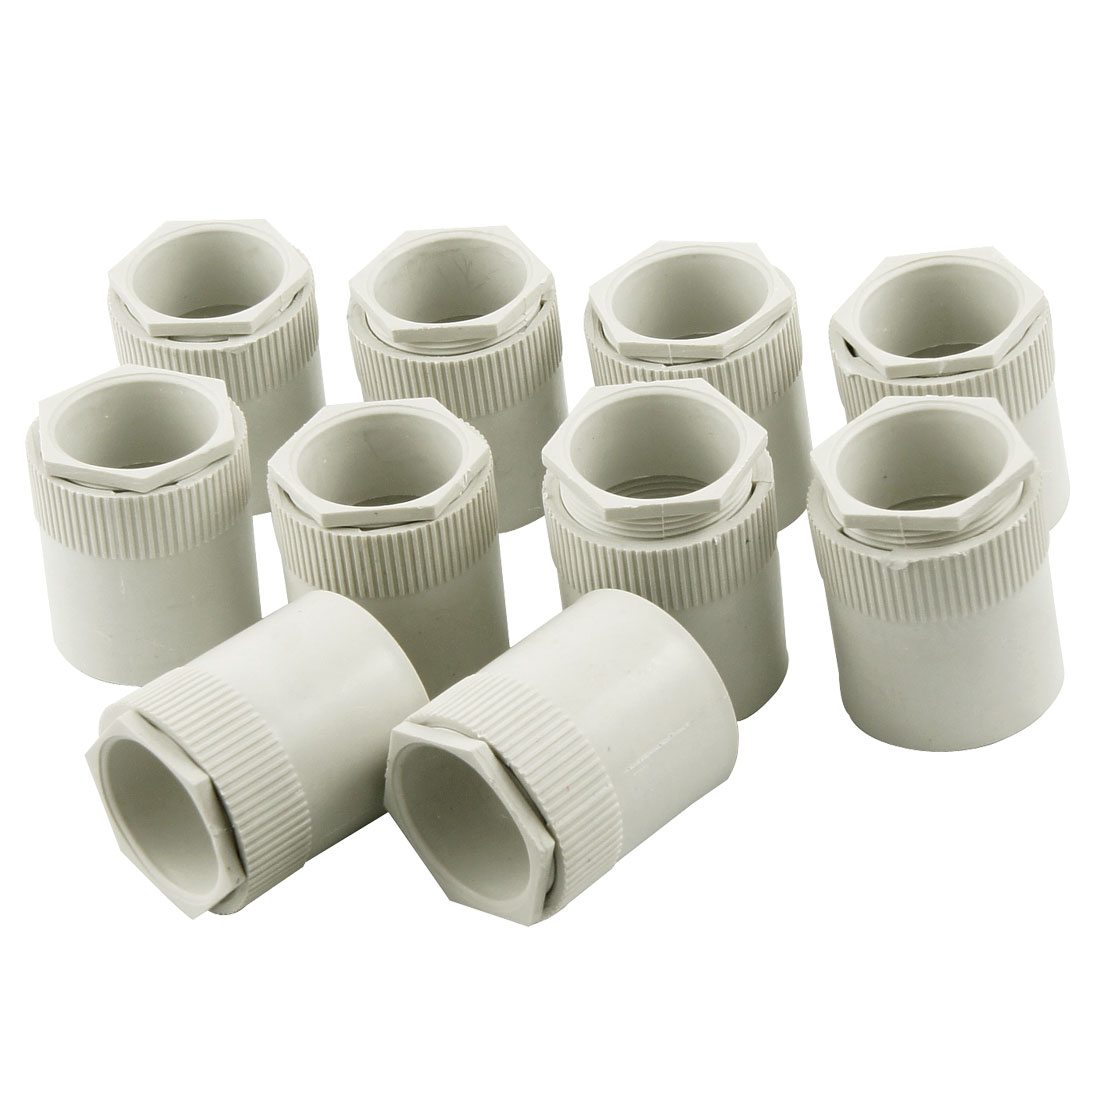 10 Pcs White PVC 31mm Thread Straight Electrical Wire Pipe Connector